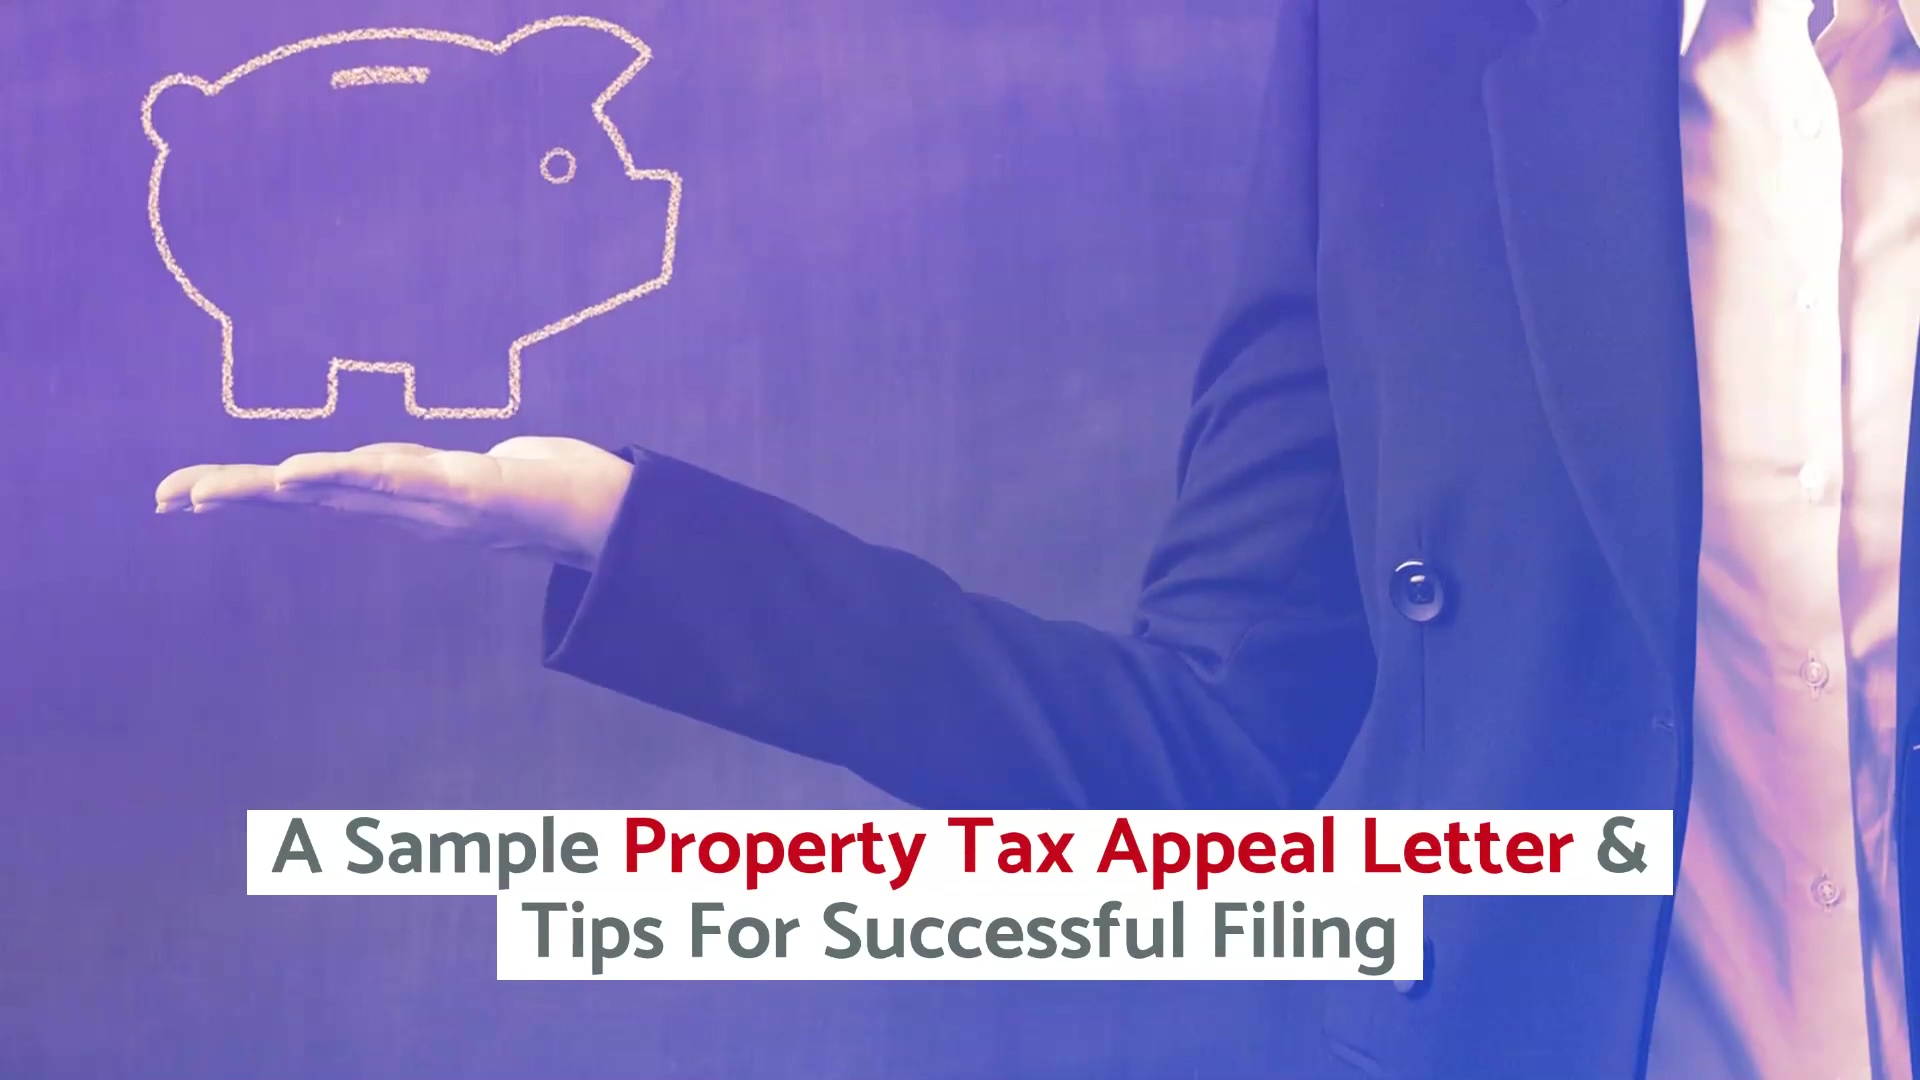 A Sample Property Tax Appeal Letter & Tips For Successful Filing